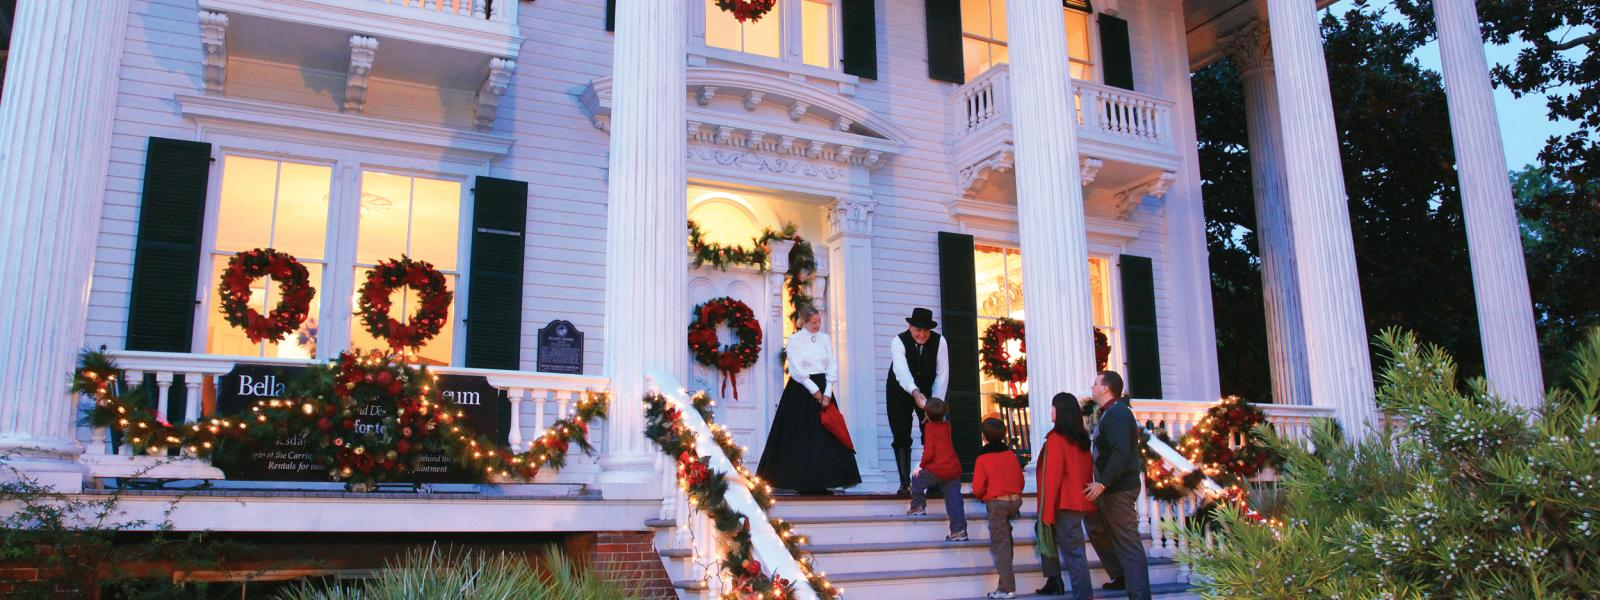 Holiday Events in Wilmington, North Carolina | 4th of July & More